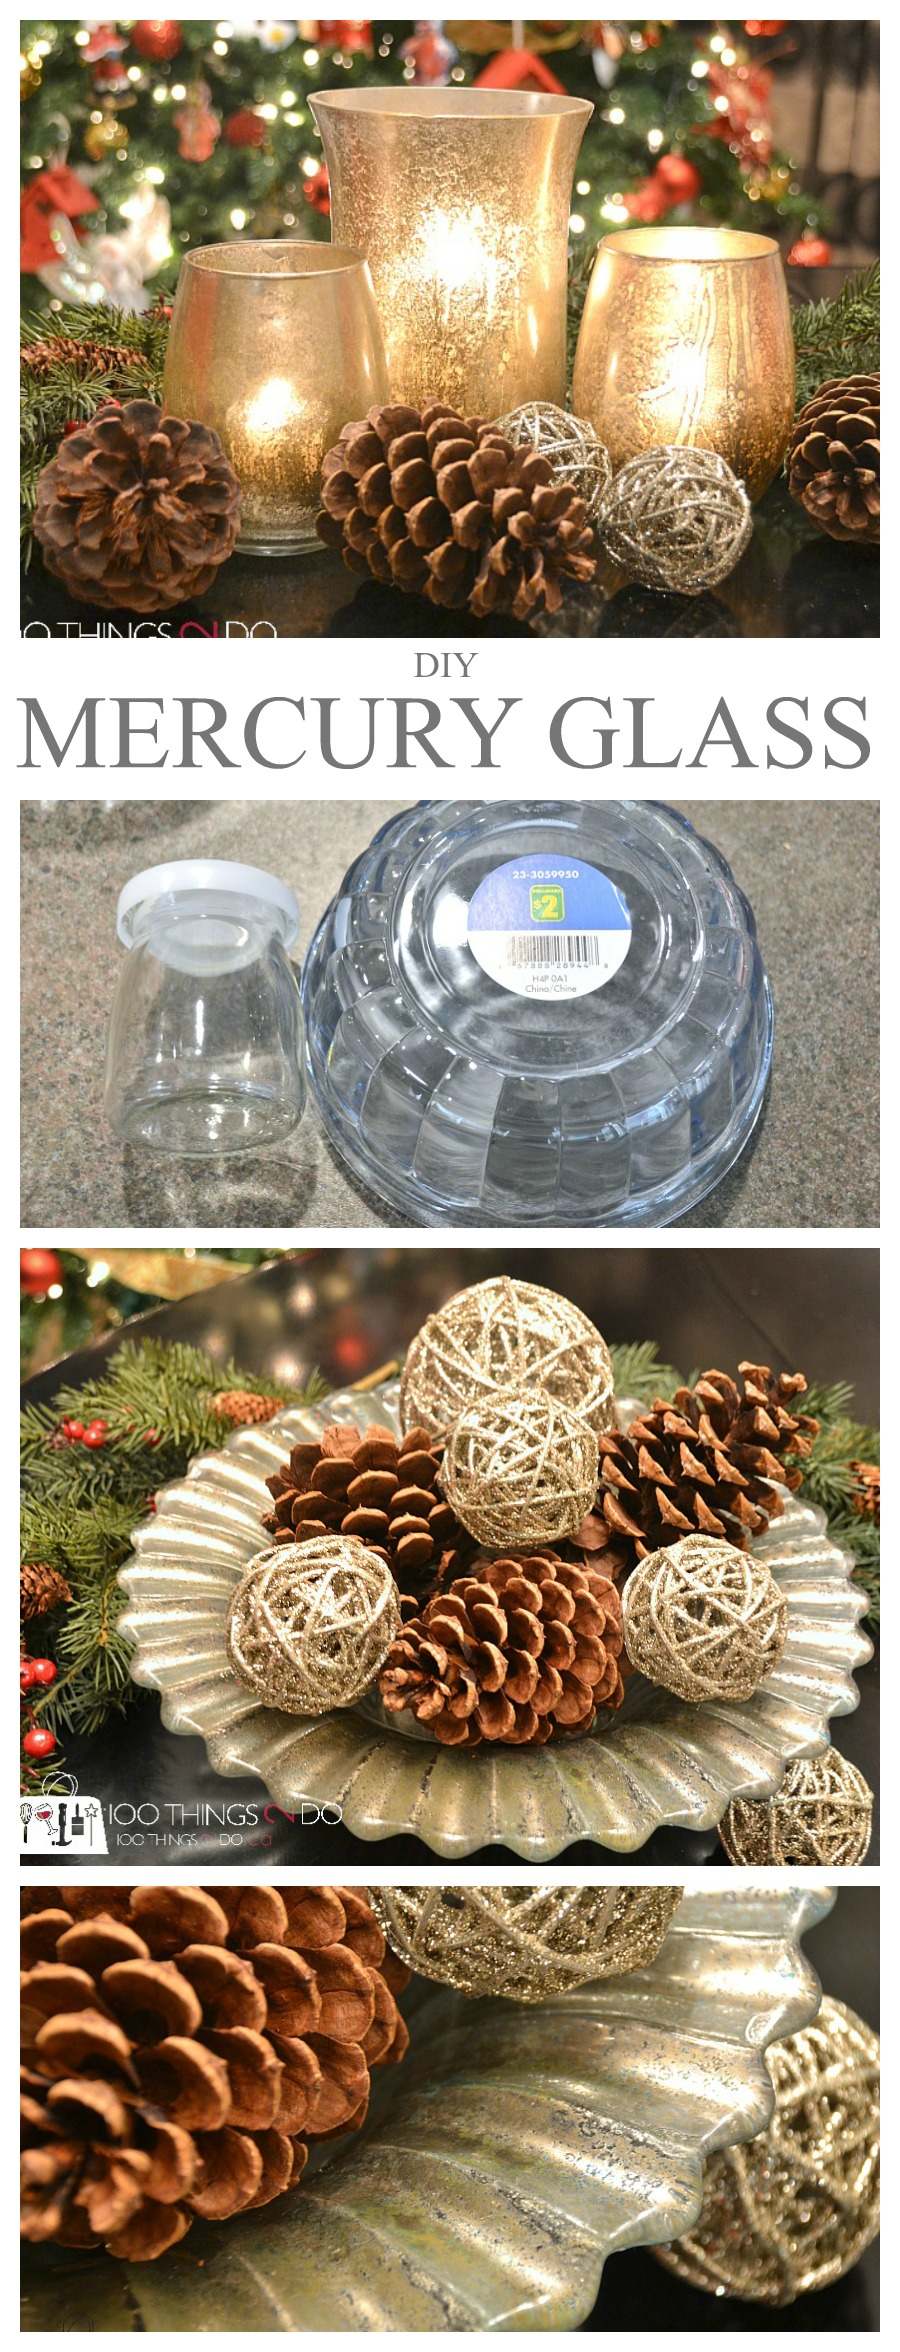 DIY Mercury glass, mercury glass, mercury glass vase, mercury glass votive, mercury glass bowl, Rust-Oleum Mirror Effect in gold